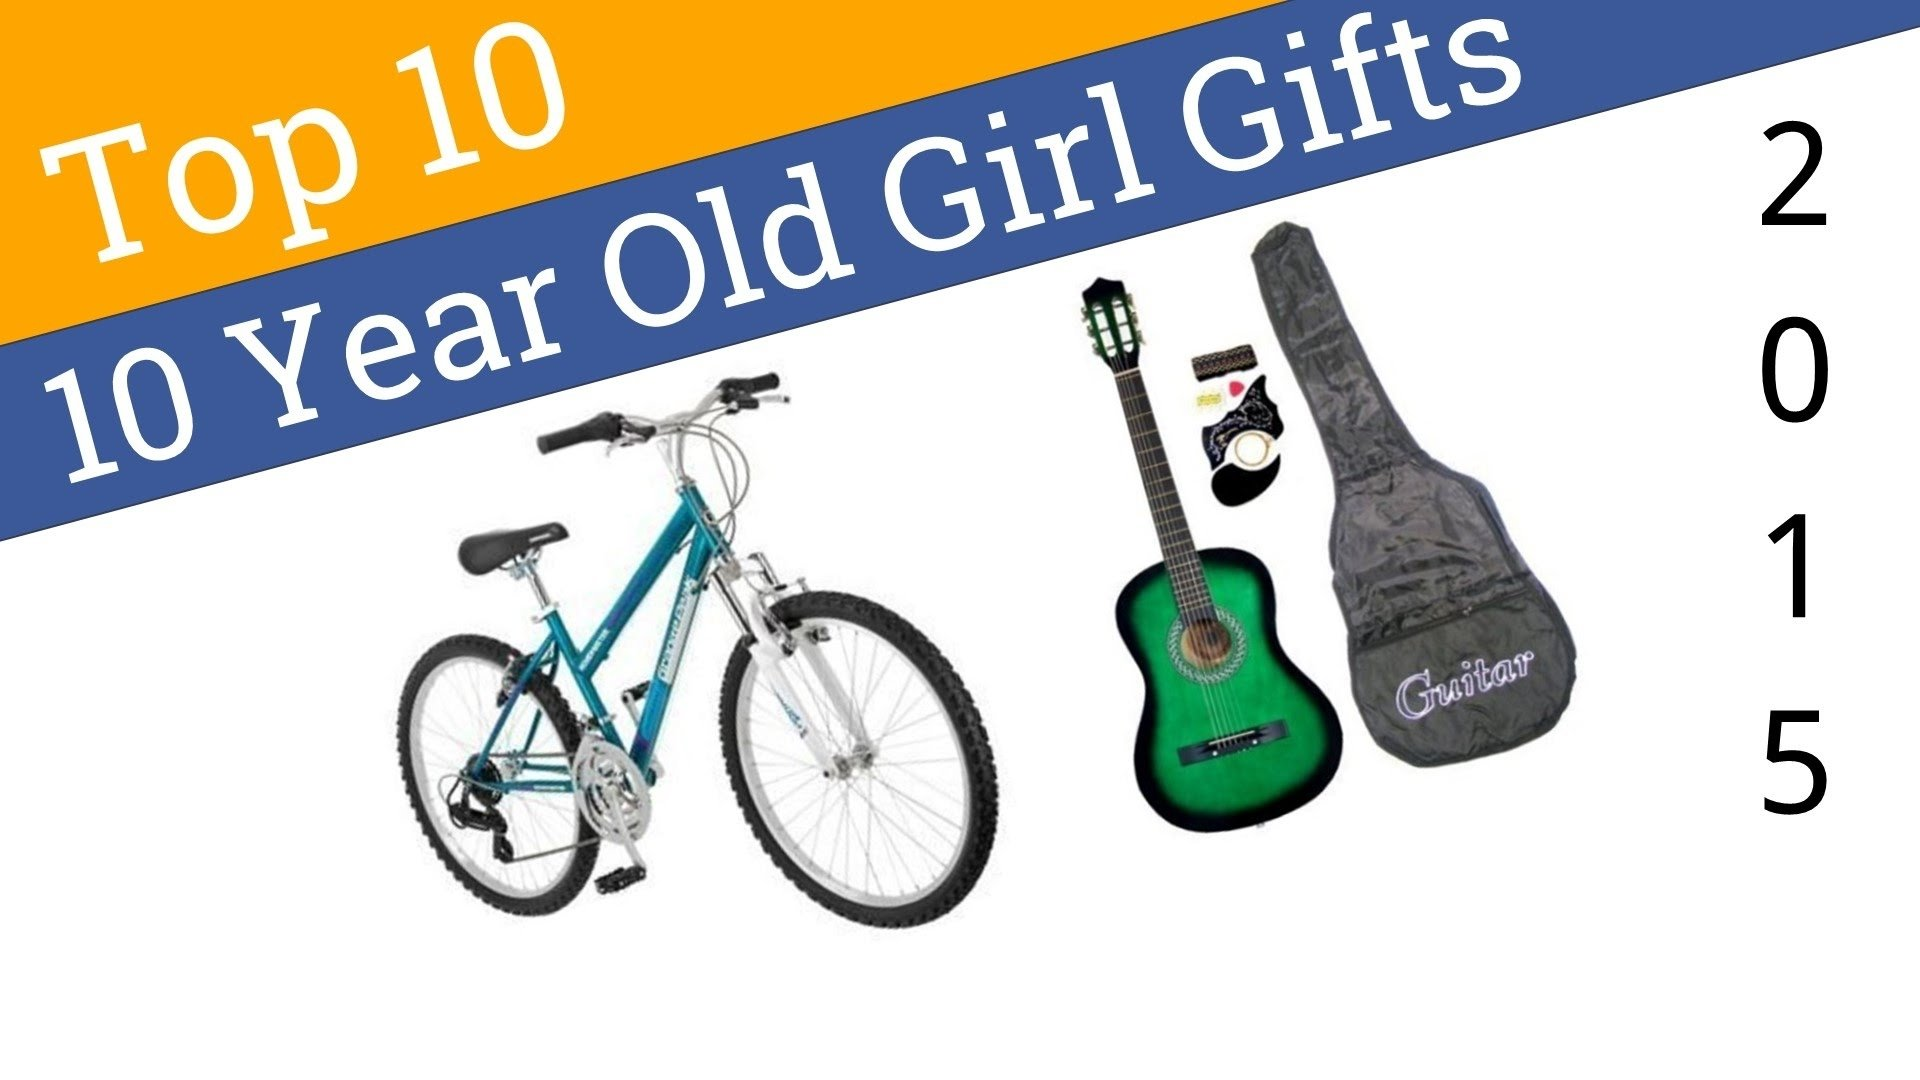 10 Amazing Year Old Birthday Gift Ideas Best Girl Gifts 2015